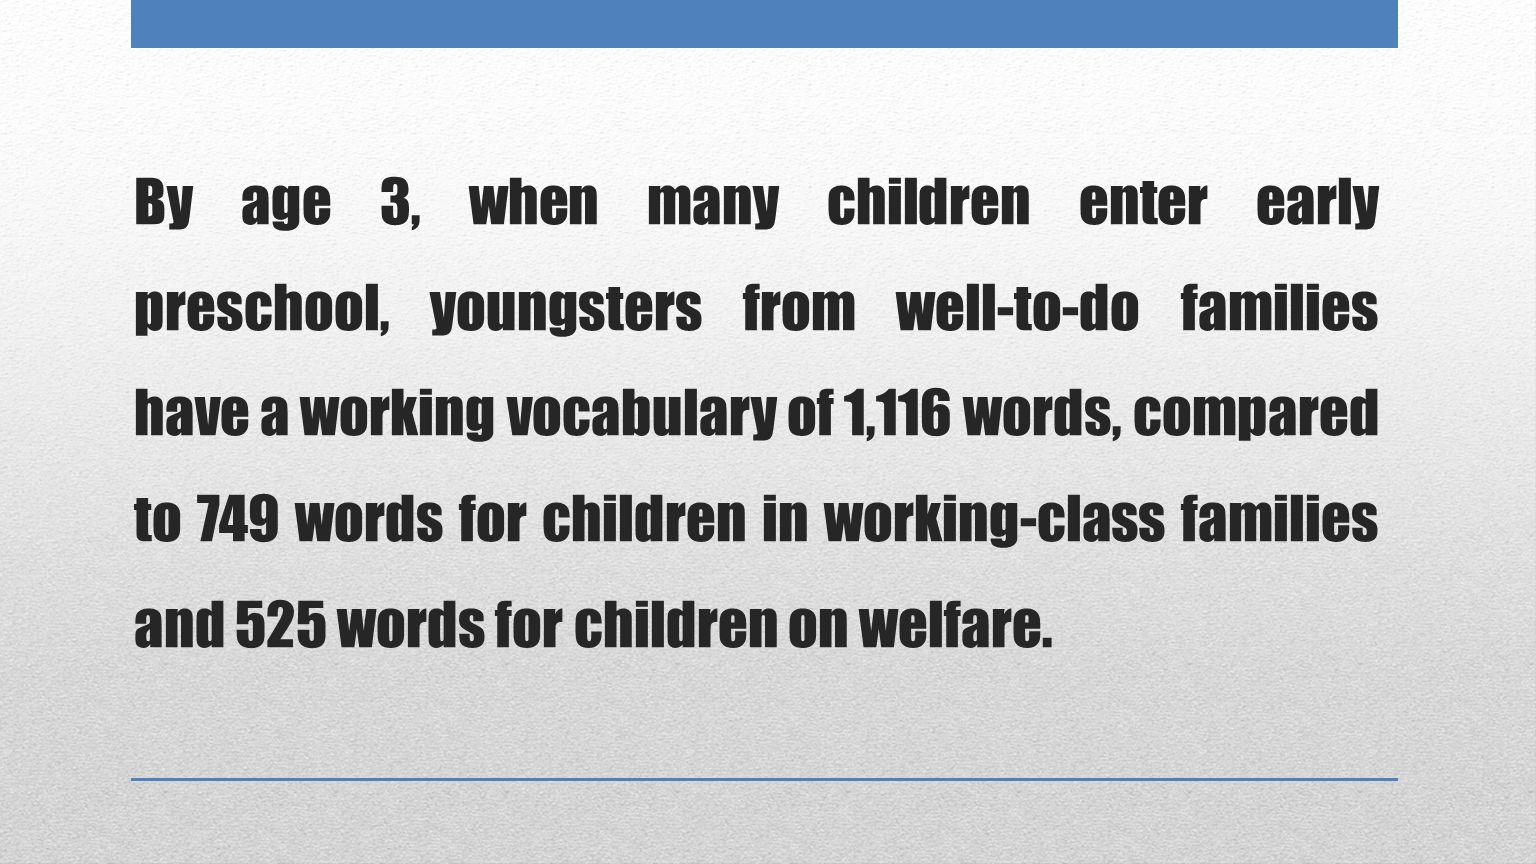 By age 3, when many children enter early preschool, youngsters from well-to-do families have a working vocabulary of 1,116 words, compared to 749 words for children in working-class families and 525 words for children on welfare.